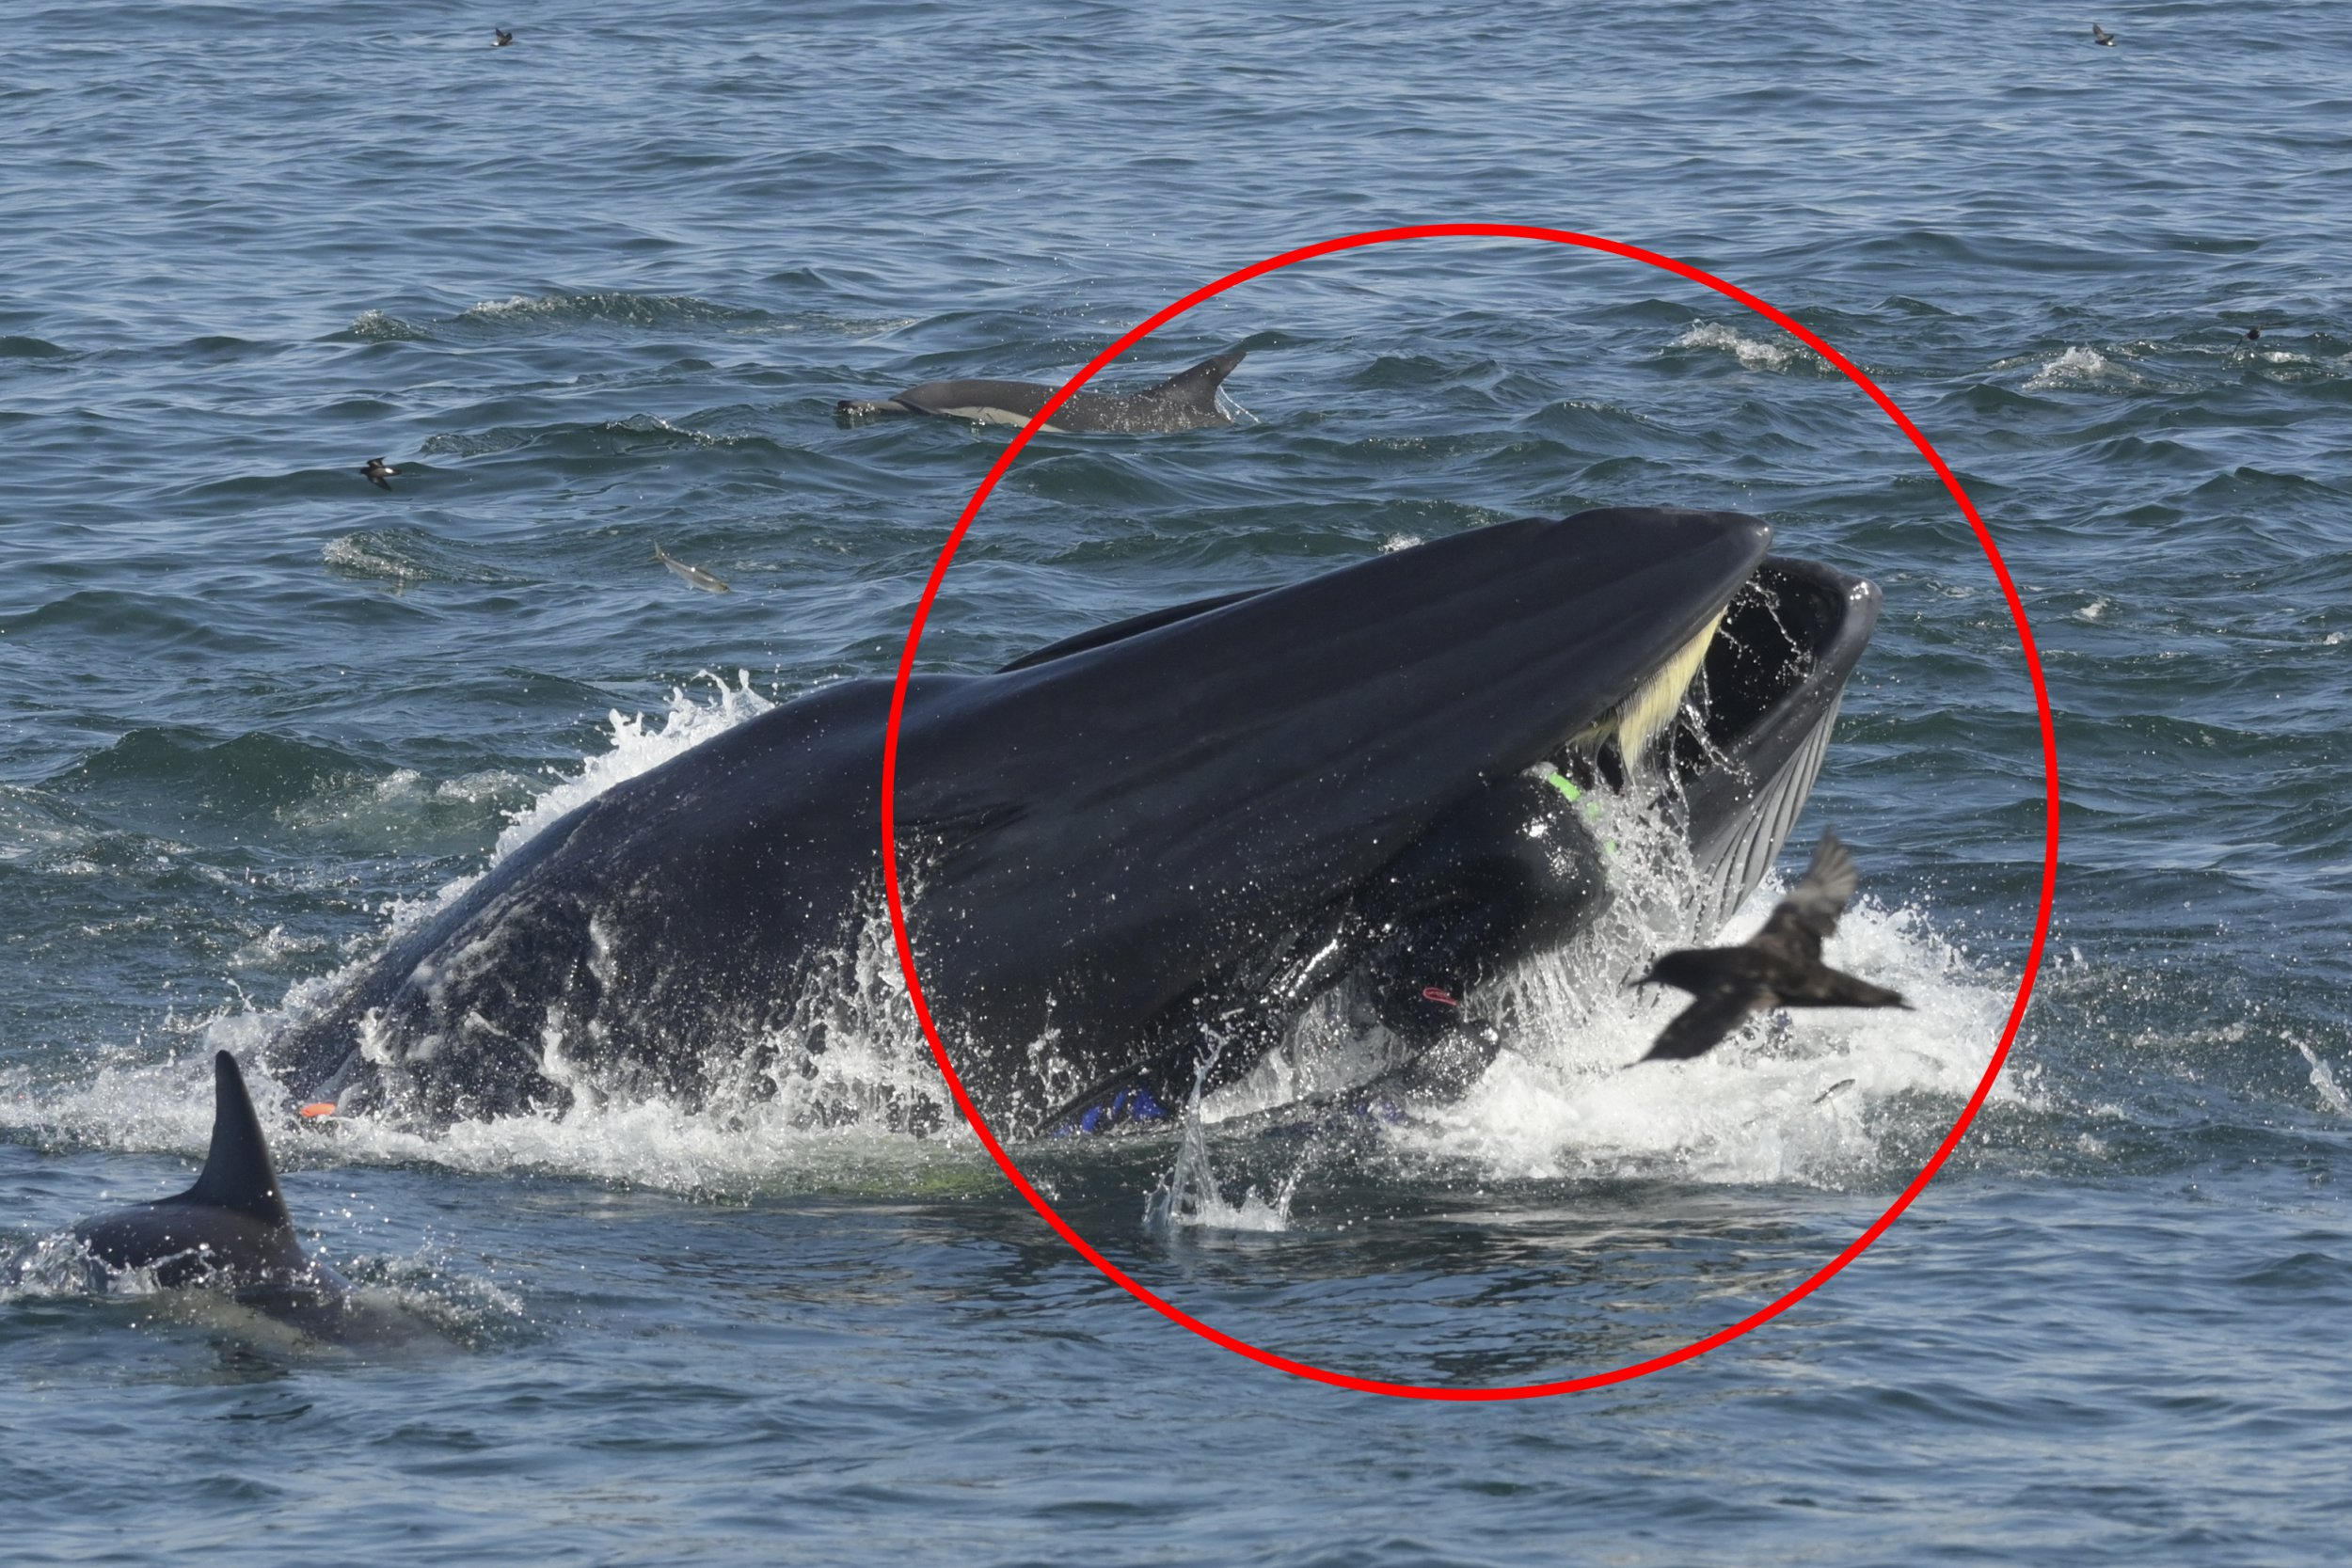 *** EXCLUSIVE - VIDEO AVAILABLE *** PORT ELIZABETH, SOUTH AFRICA - FEBRUARY 16: Zoomed in photo of Rainer Schimpf in the mouth of the Bryde's Whale on February 16th, 2019 in Port Elizabeth, South Africa. A DRAMATIC set of pictures show a man nearly being swallowed by a Bryde?s Whale off Port Elizabeth Harbour. Rainer Schimpf, 51, has worked as a dive tour operator in South Africa for over 15 years. But in February, he experienced something very rare ? the inside of a whale?s mouth. In perfect sea conditions, Rainer and his team set off to document a sardine run ? a natural event where gannets, penguins, seals, dolphins, whales and sharks work together to gather the fish into bait balls. Rainer and his colleagues film the expedition for educational and environmental purposes.Split into two groups, Rainer led his team into the ocean, about 25 nautical miles from shore.But it was when the sea suddenly churned up that the team knew something strange was happening. PHOTOGRAPH BY Heinz Toperczer / Barcroft Images